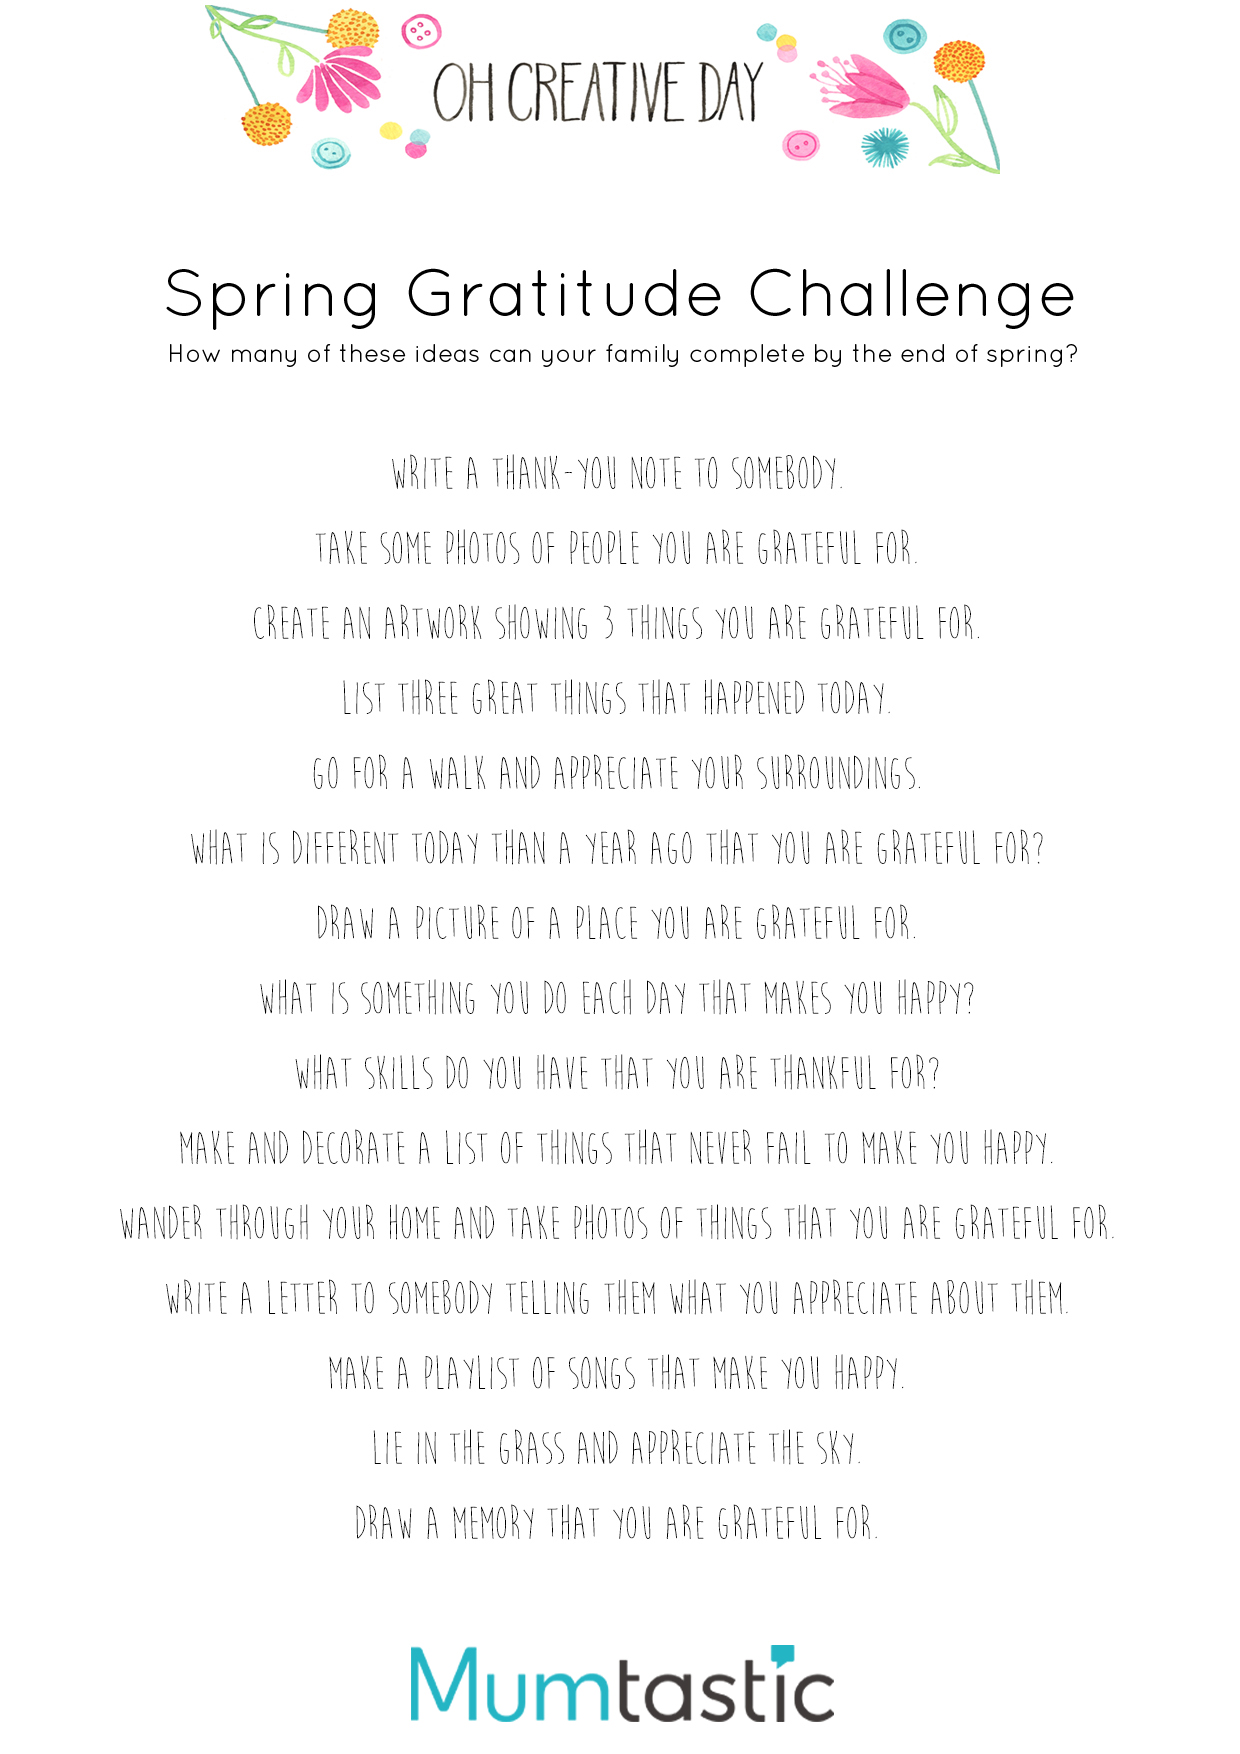 Oh Creative Day and Mumtastic Gratitude Challenge